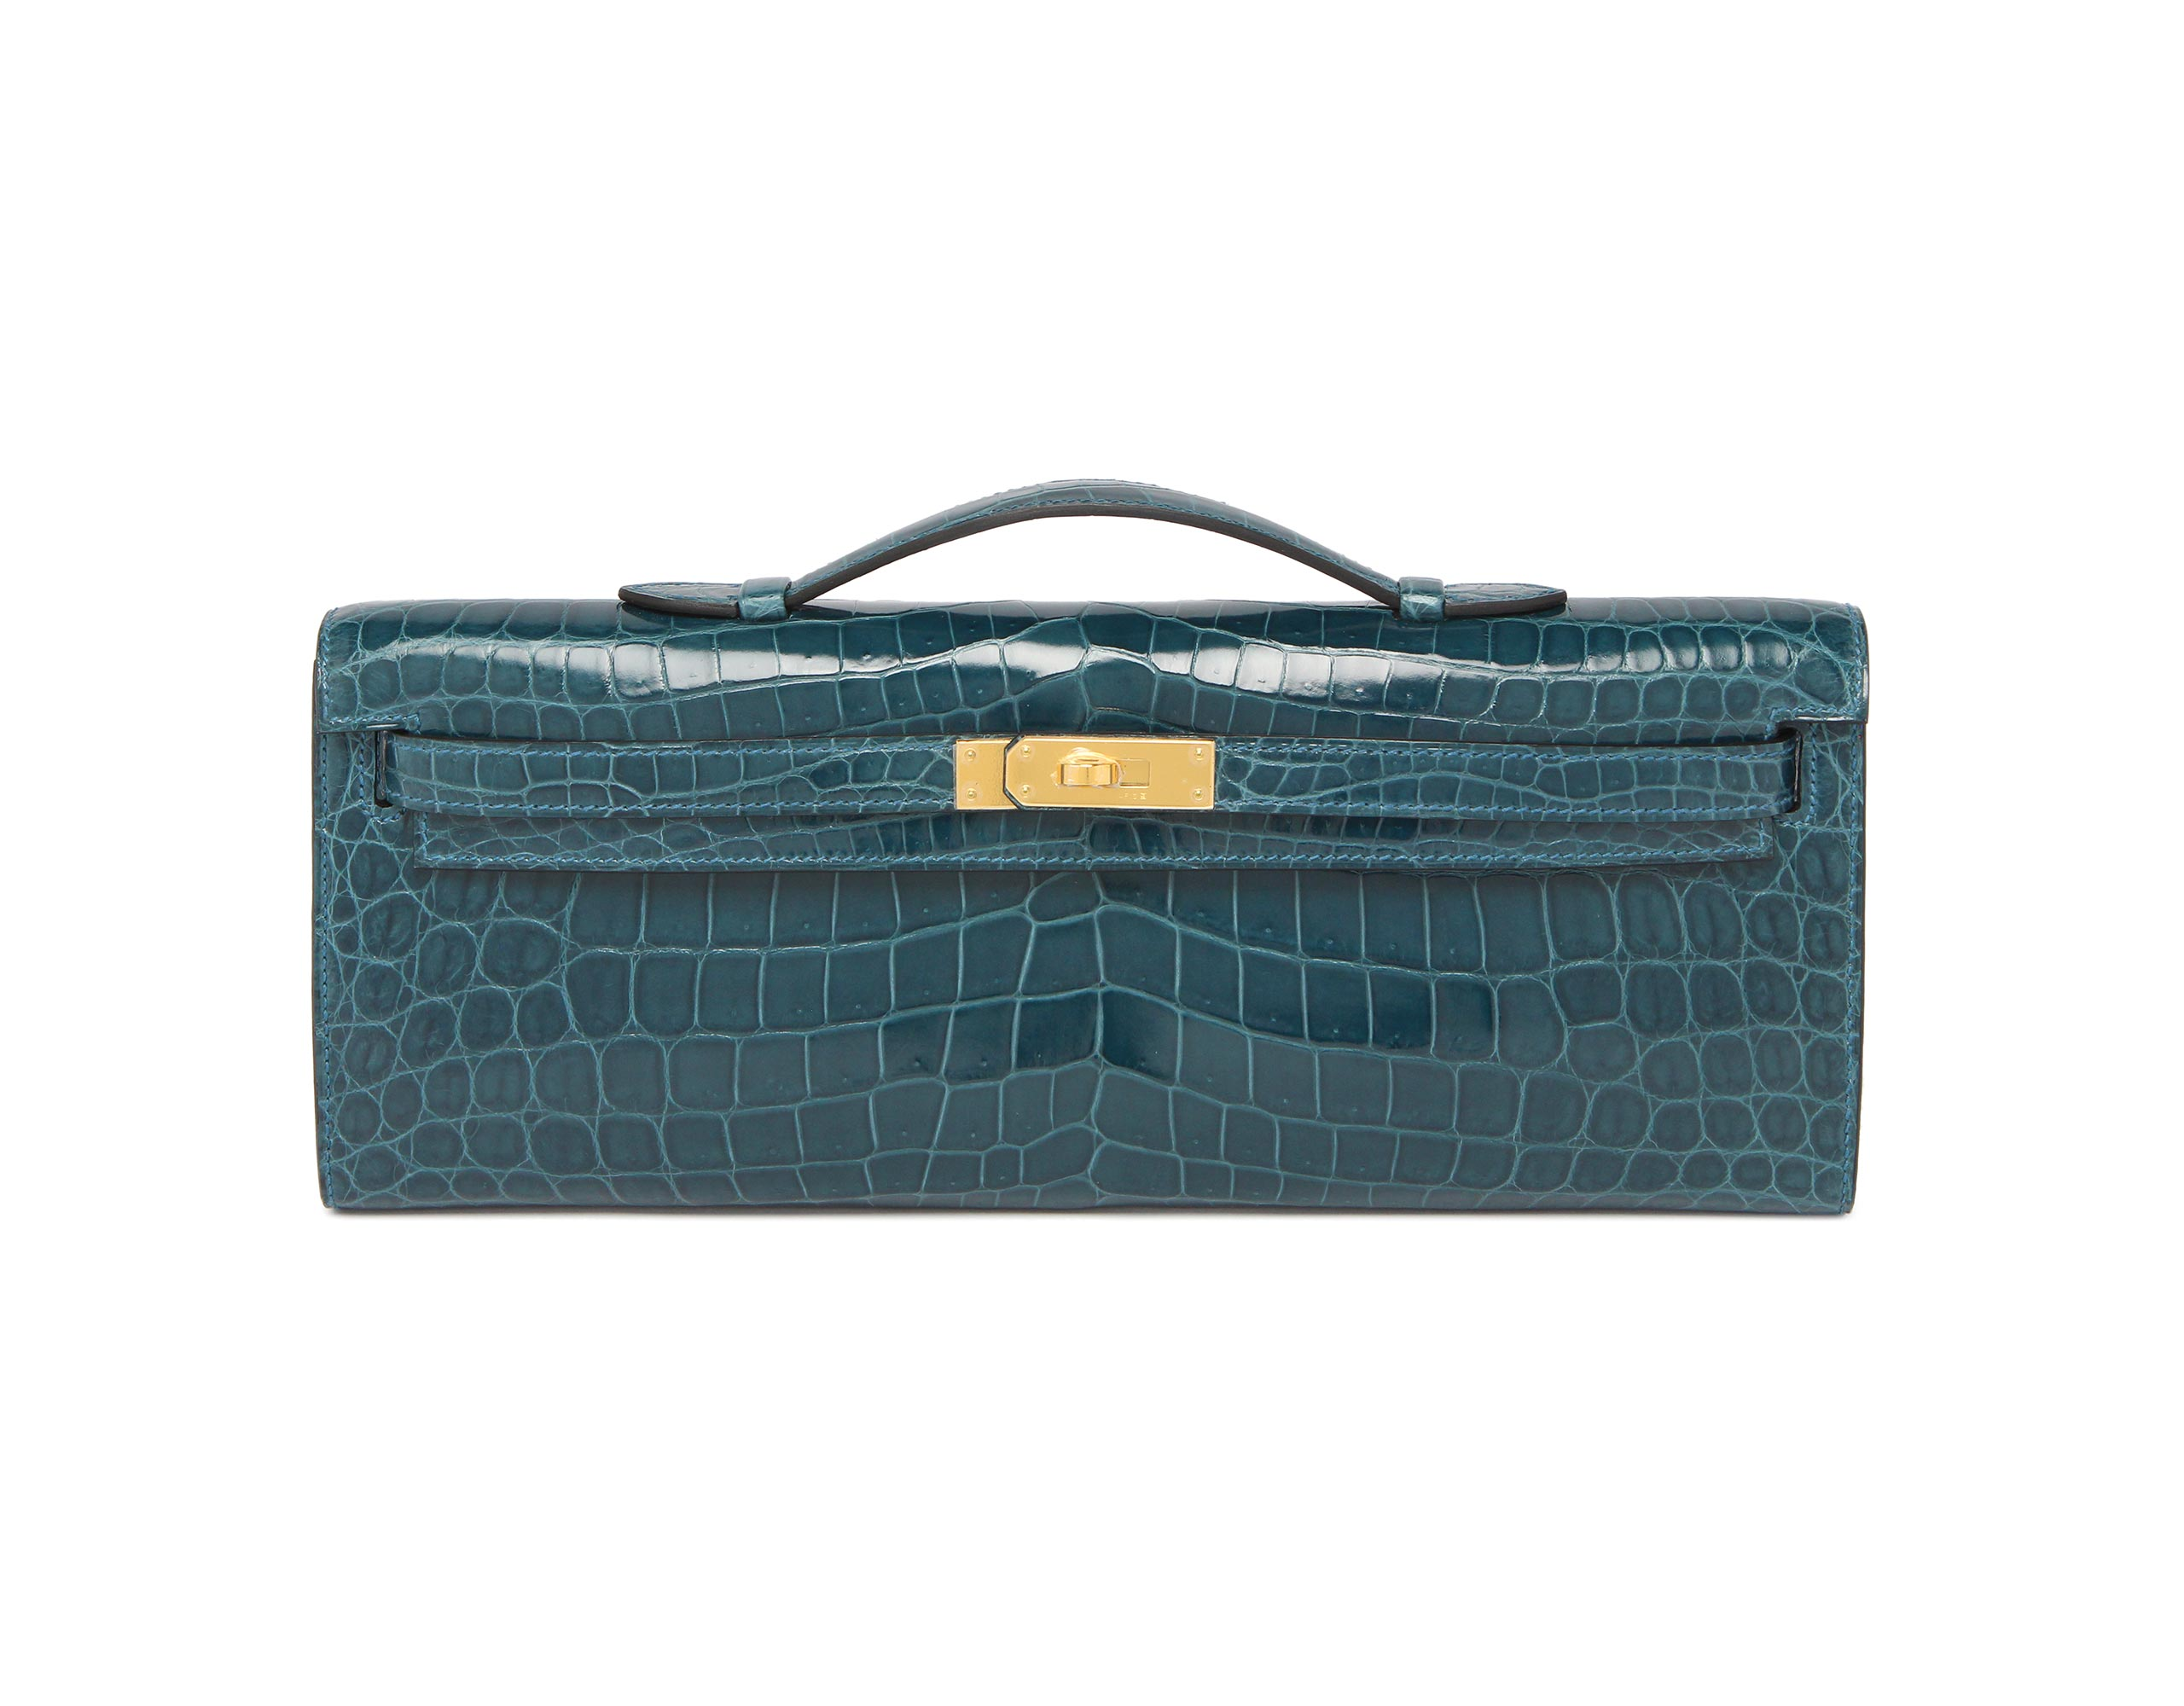 Hermes Kelly Cut Blue Colvert Shiny Nilo Croc with Gold